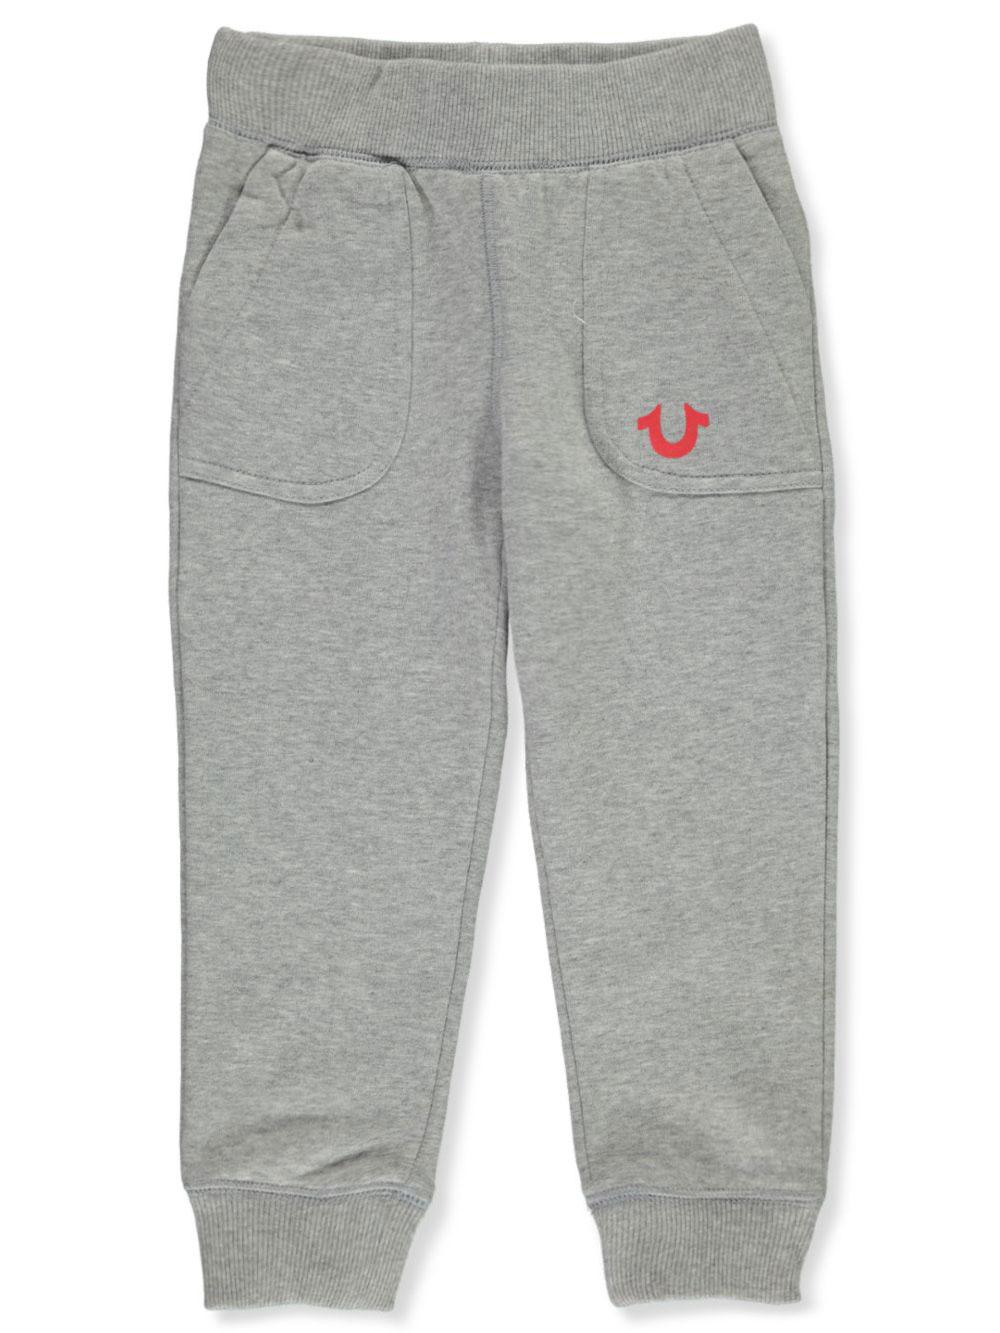 Girls Heather Gray Sweatpants and Joggers